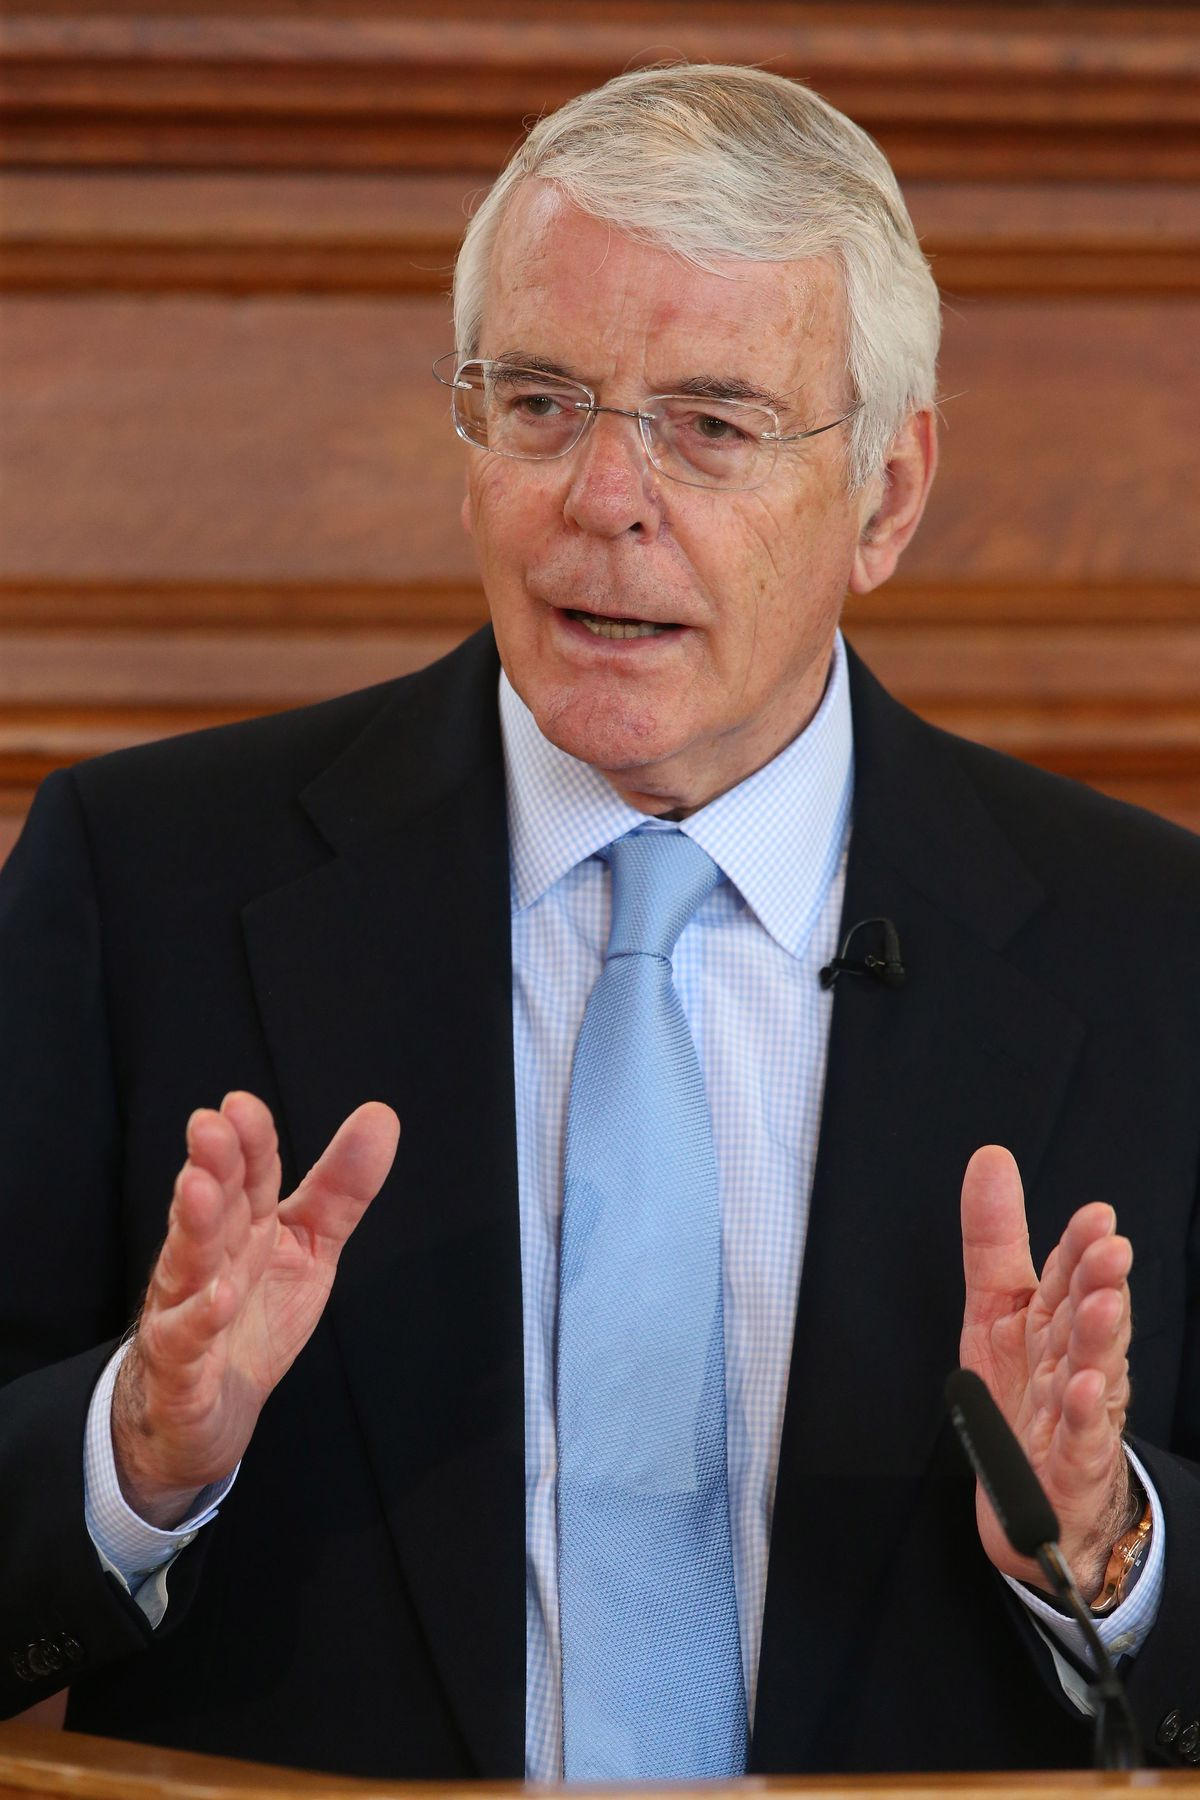 Sir John Major says Britain is no longer a Great Power